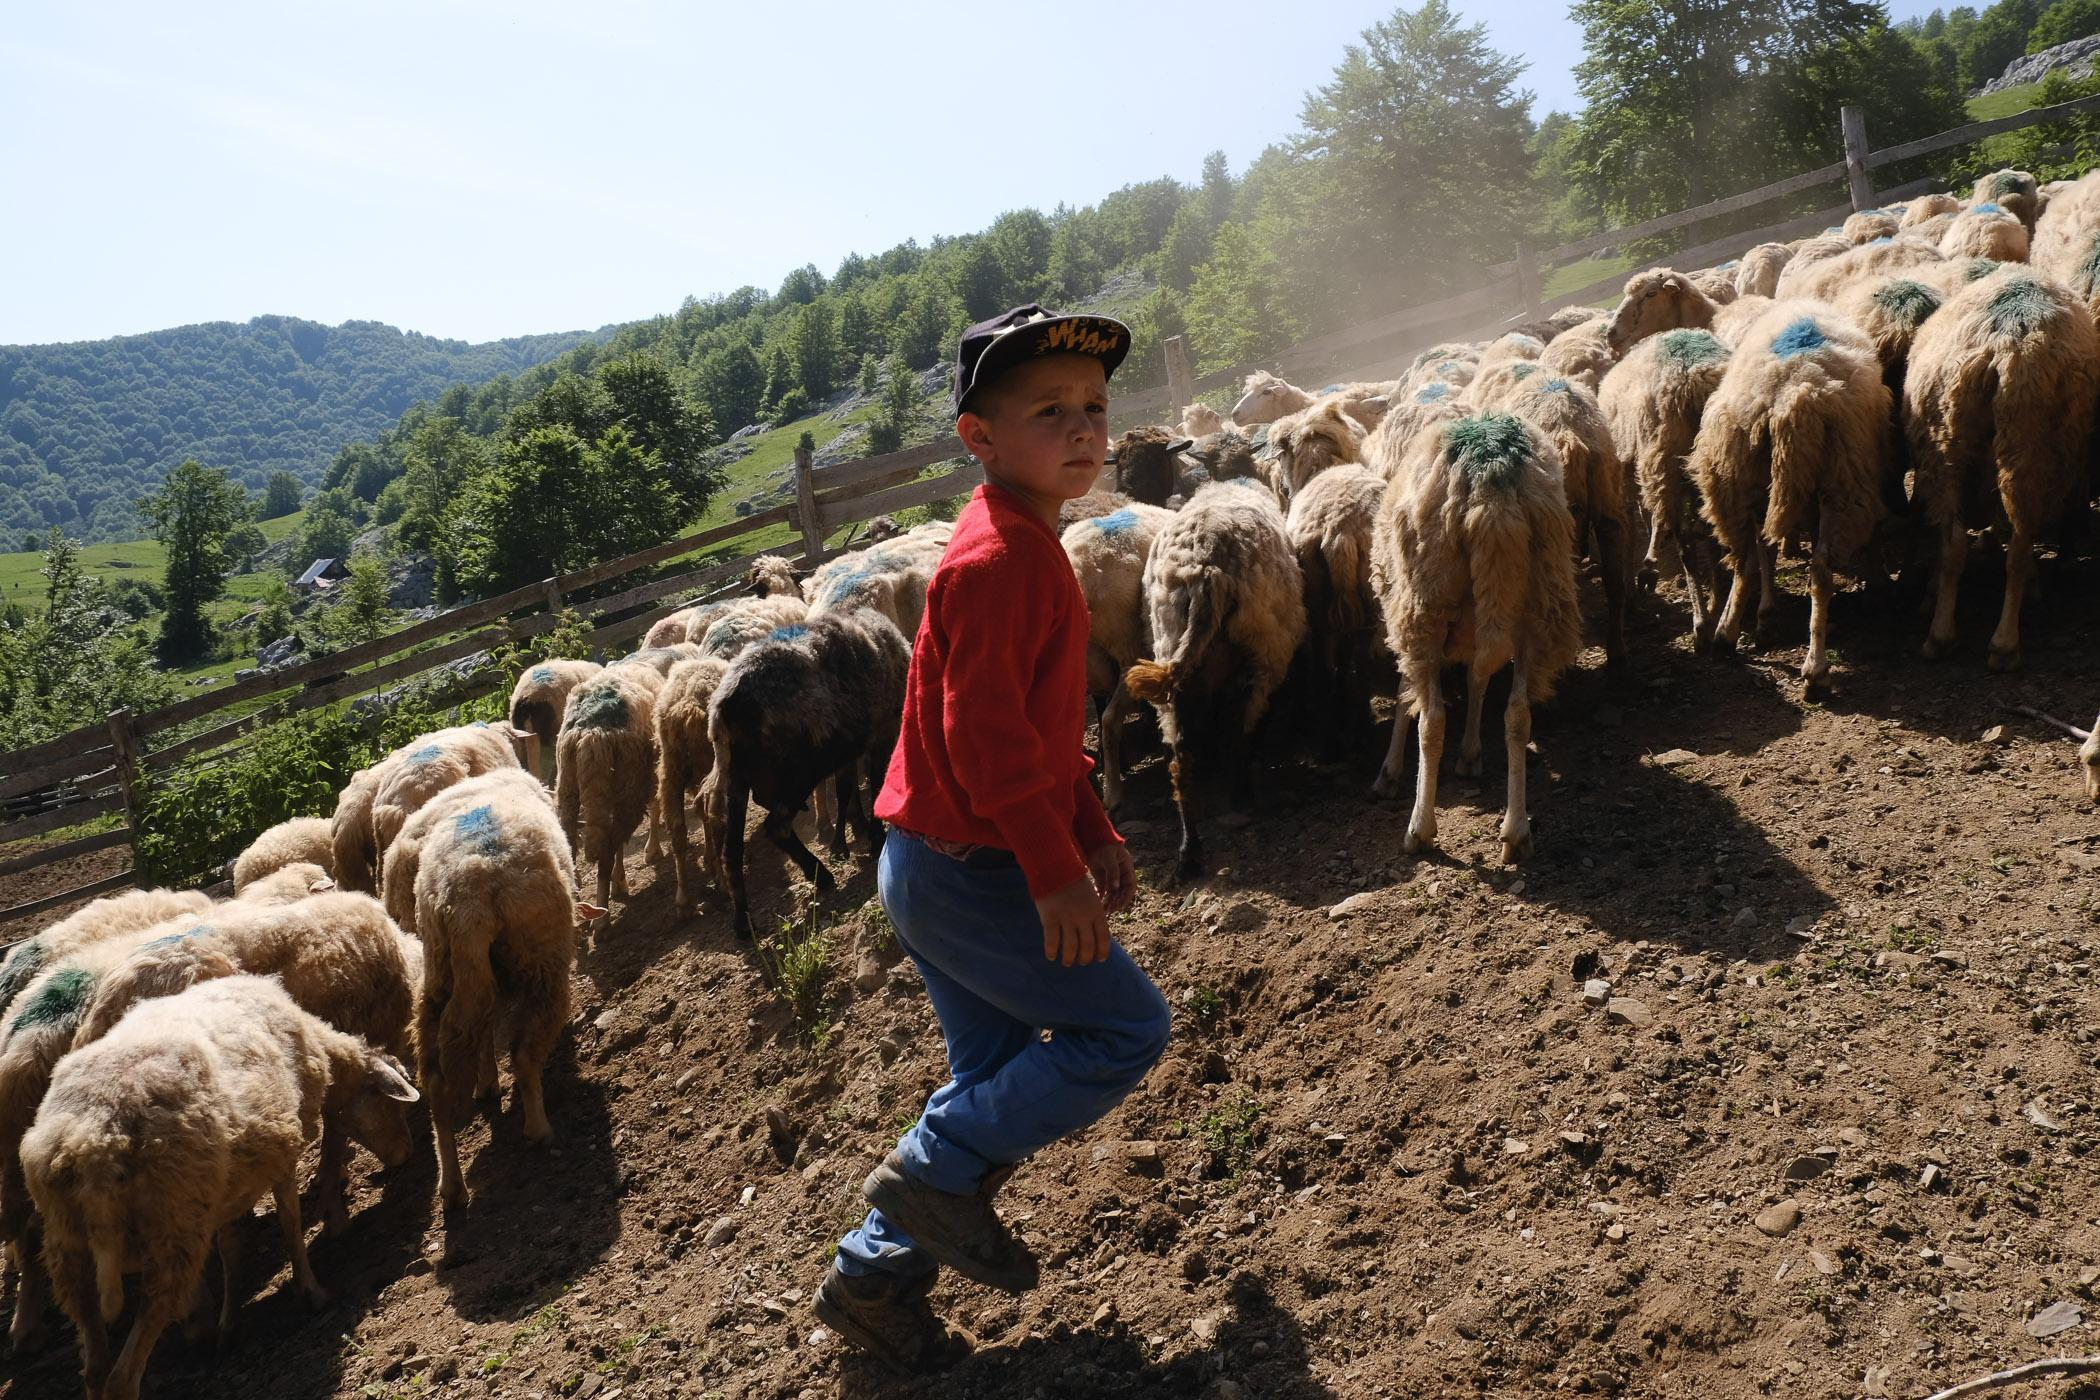 Wilson Bikaj, one of Gazmend's sons, helps round up sheep in an enclosure in Koprisht, Kelmend region, Albania. The entire Bikaj family takes part in the process of caring for and grazing the sheep during the summer months.